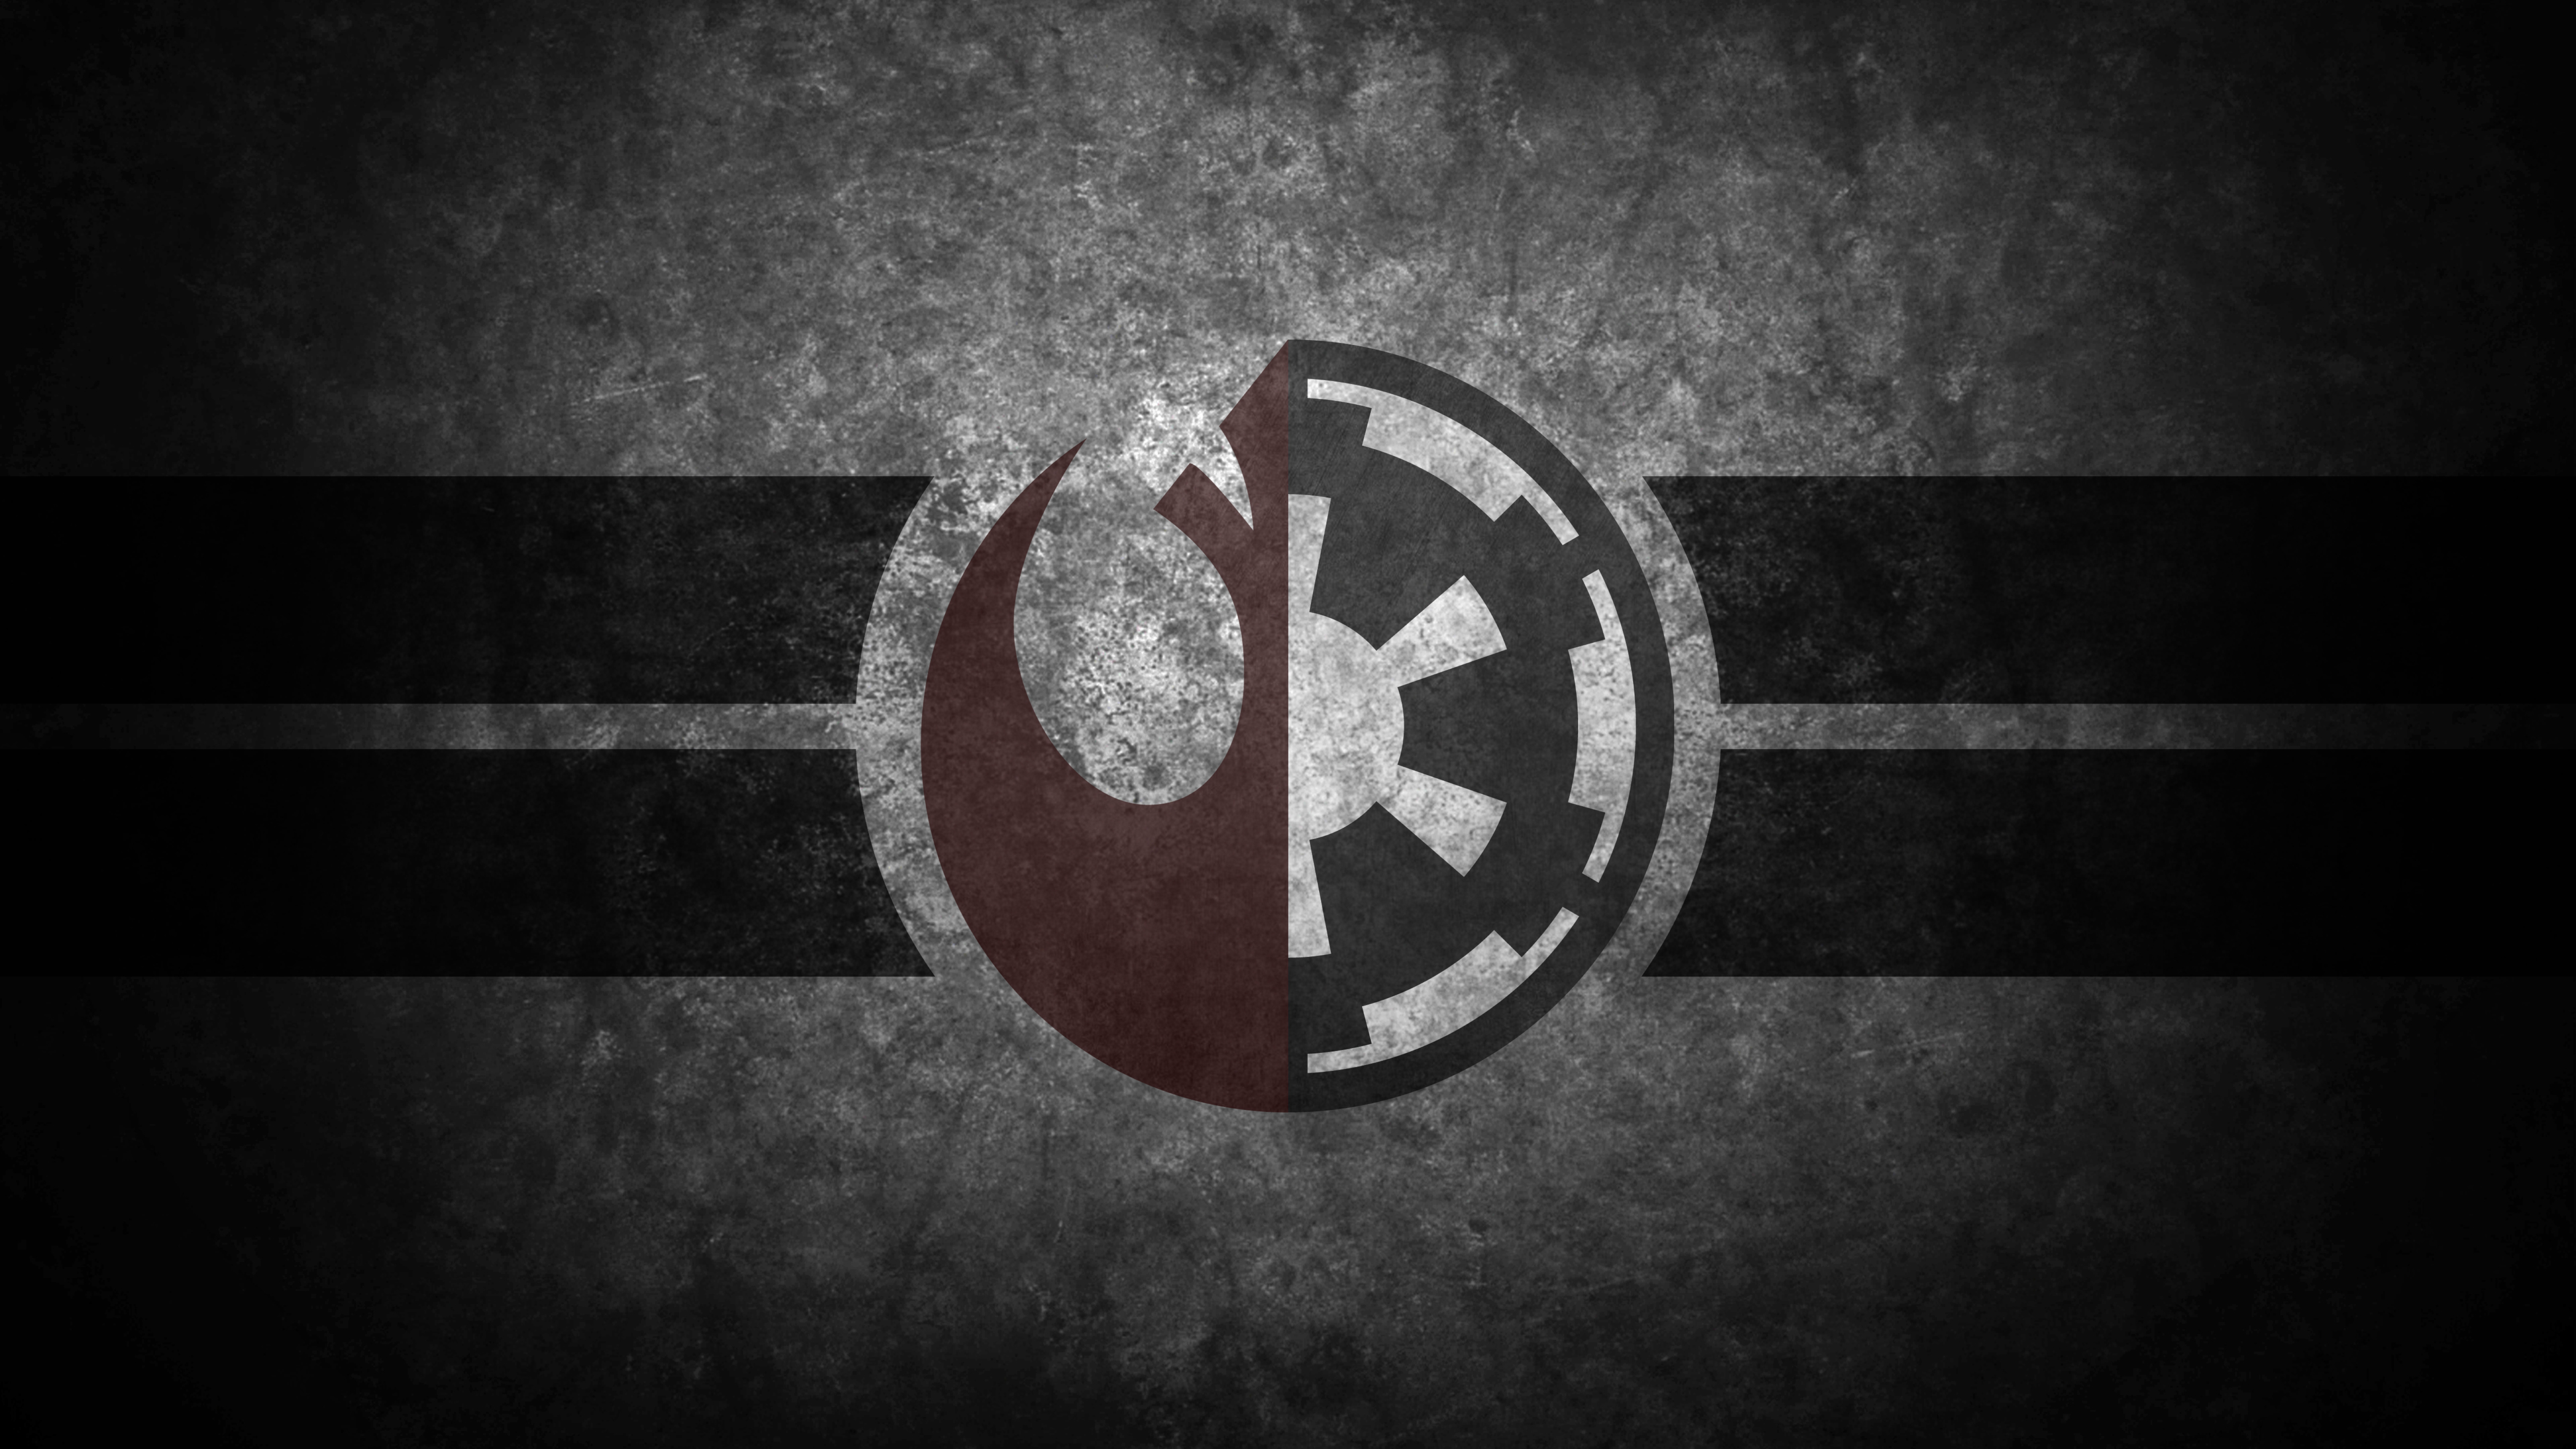 Star Wars Empire Logo Wallpaper